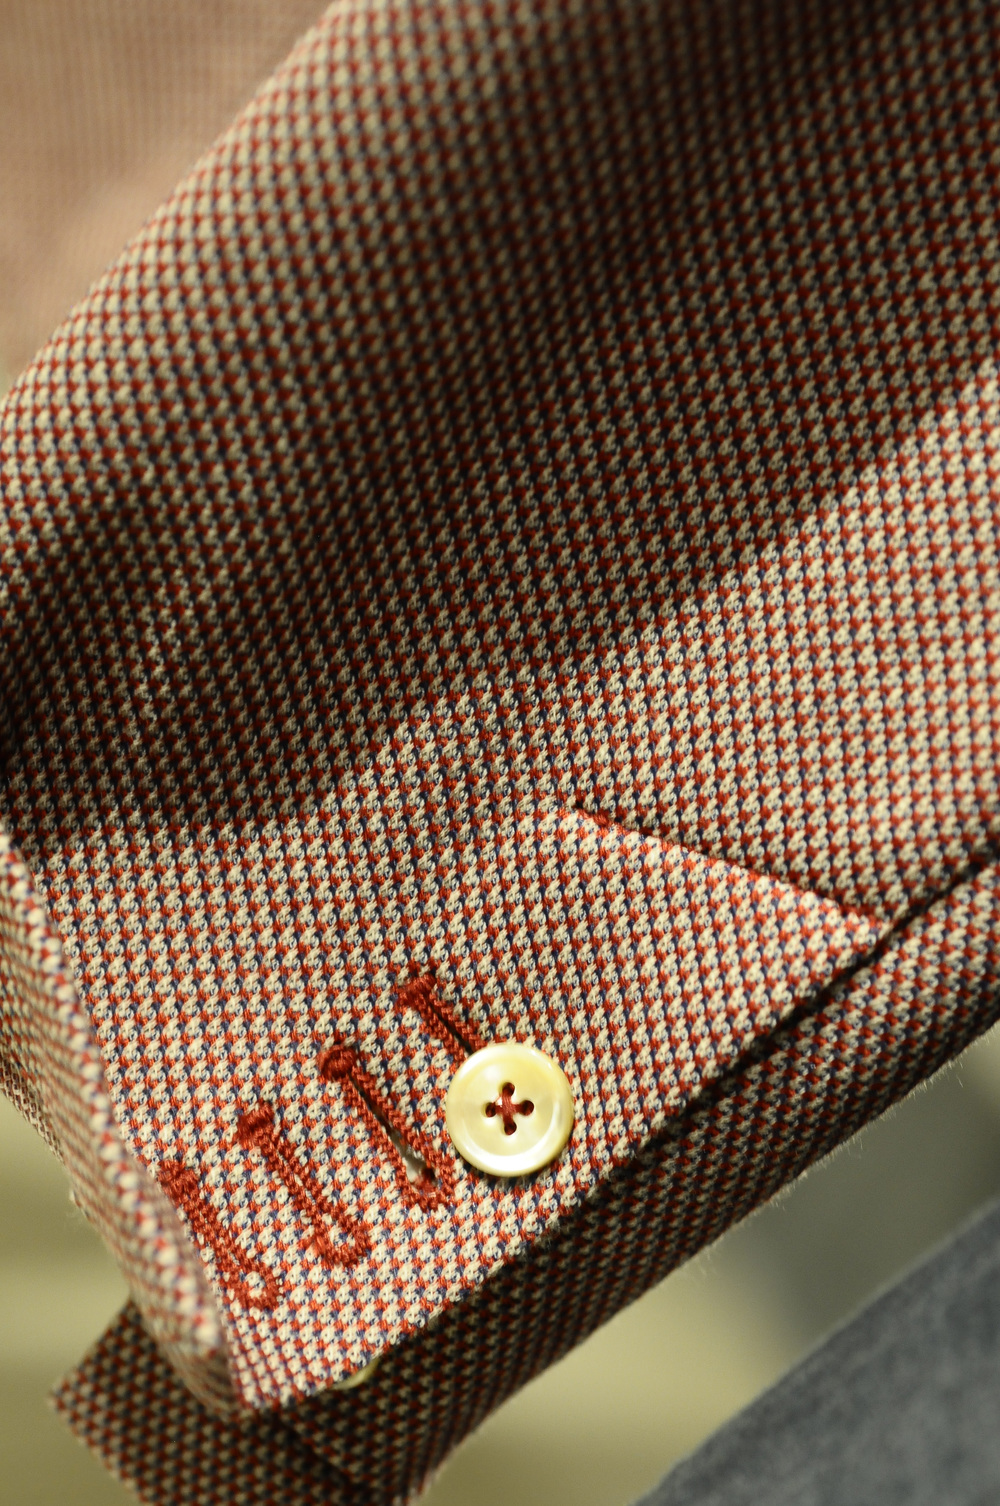 Sartorial details by SEVENTY